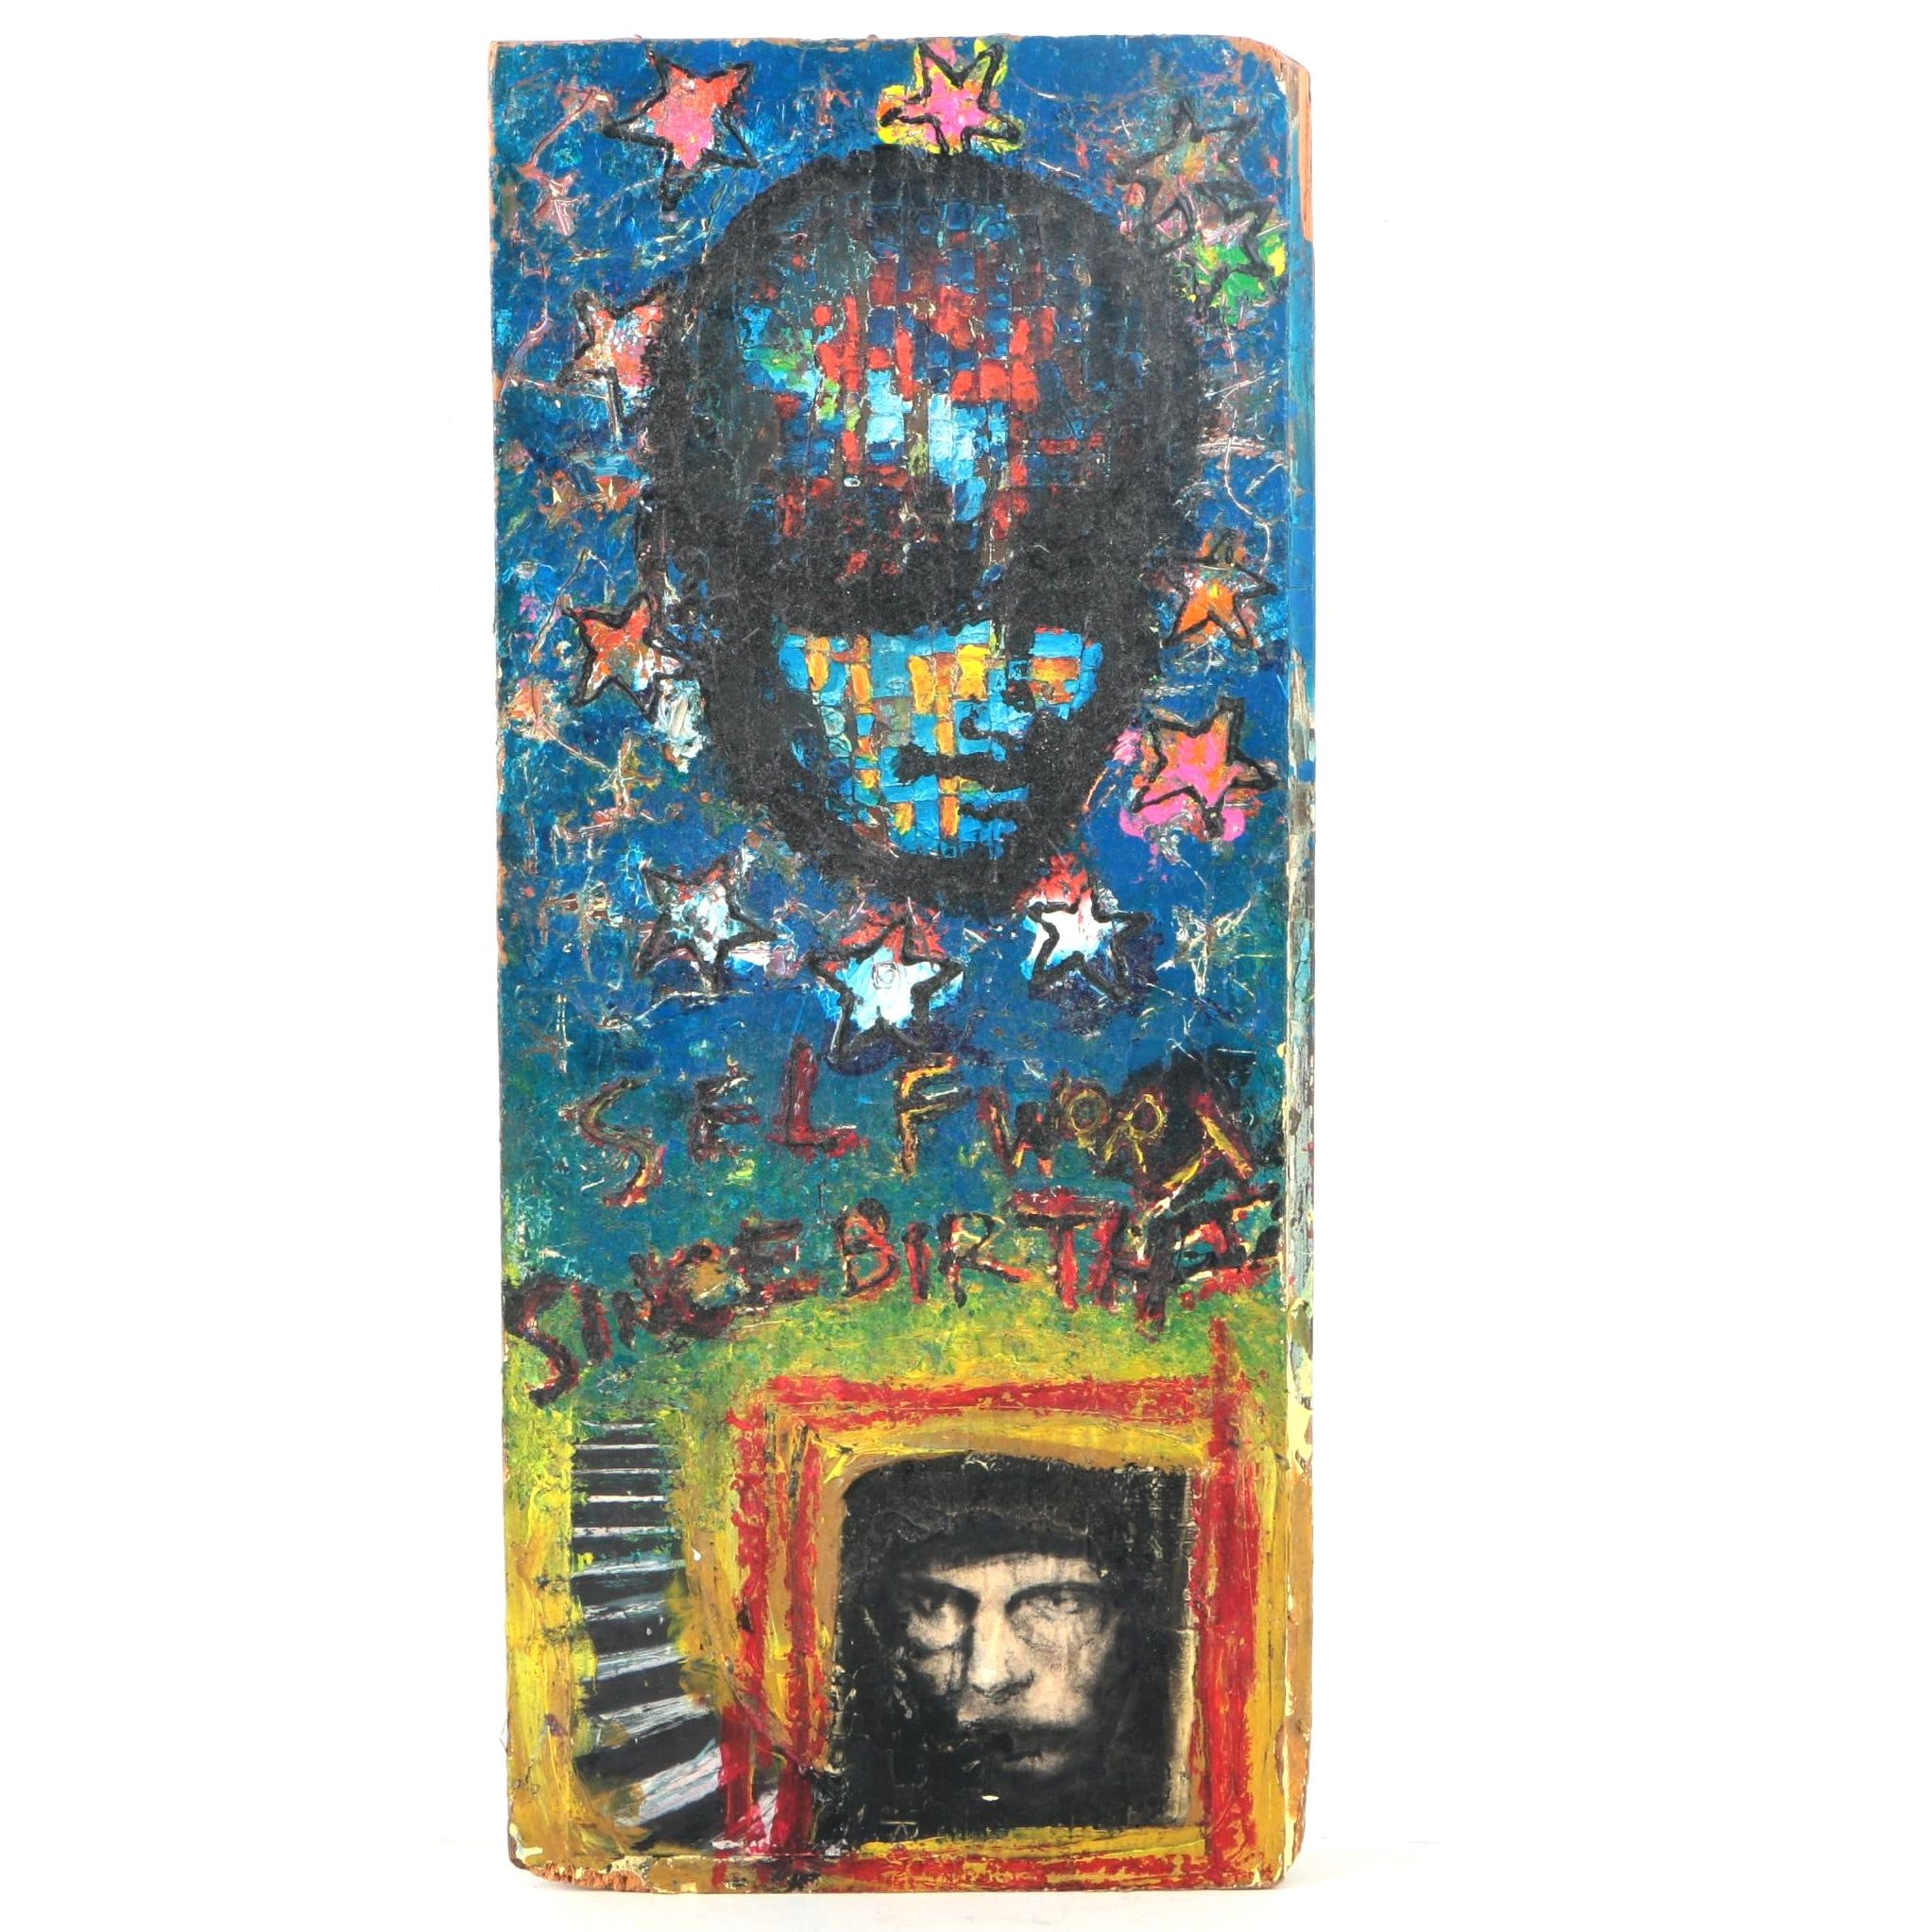 Expressive Mixed Media Painting on Wood Panel